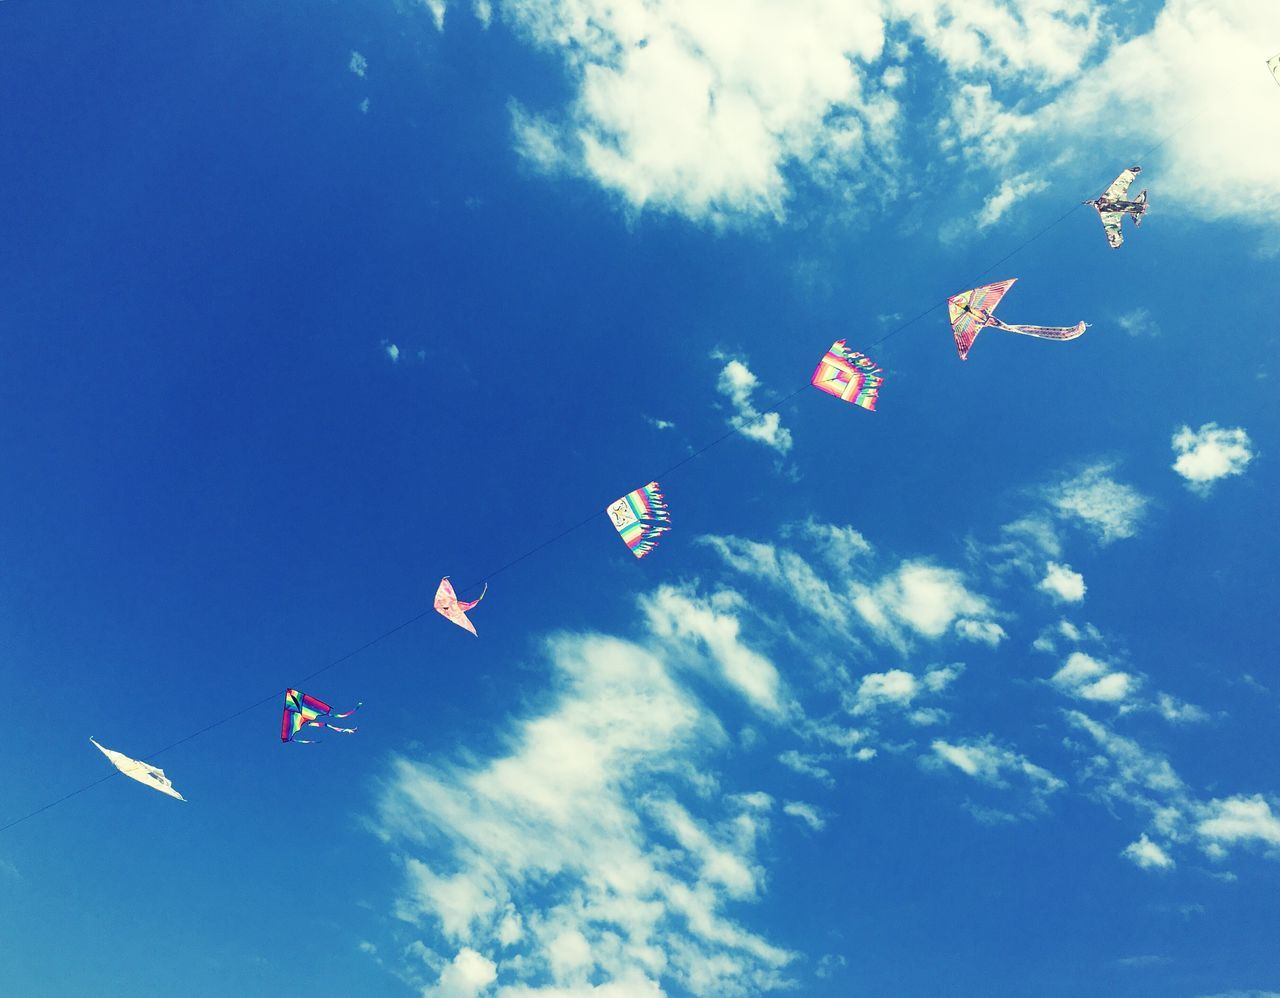 flag, patriotism, flying, sky, low angle view, kite, wind, mid-air, kite - toy, cloud - sky, pride, childhood, day, no people, blue, outdoors, nature, beauty in nature